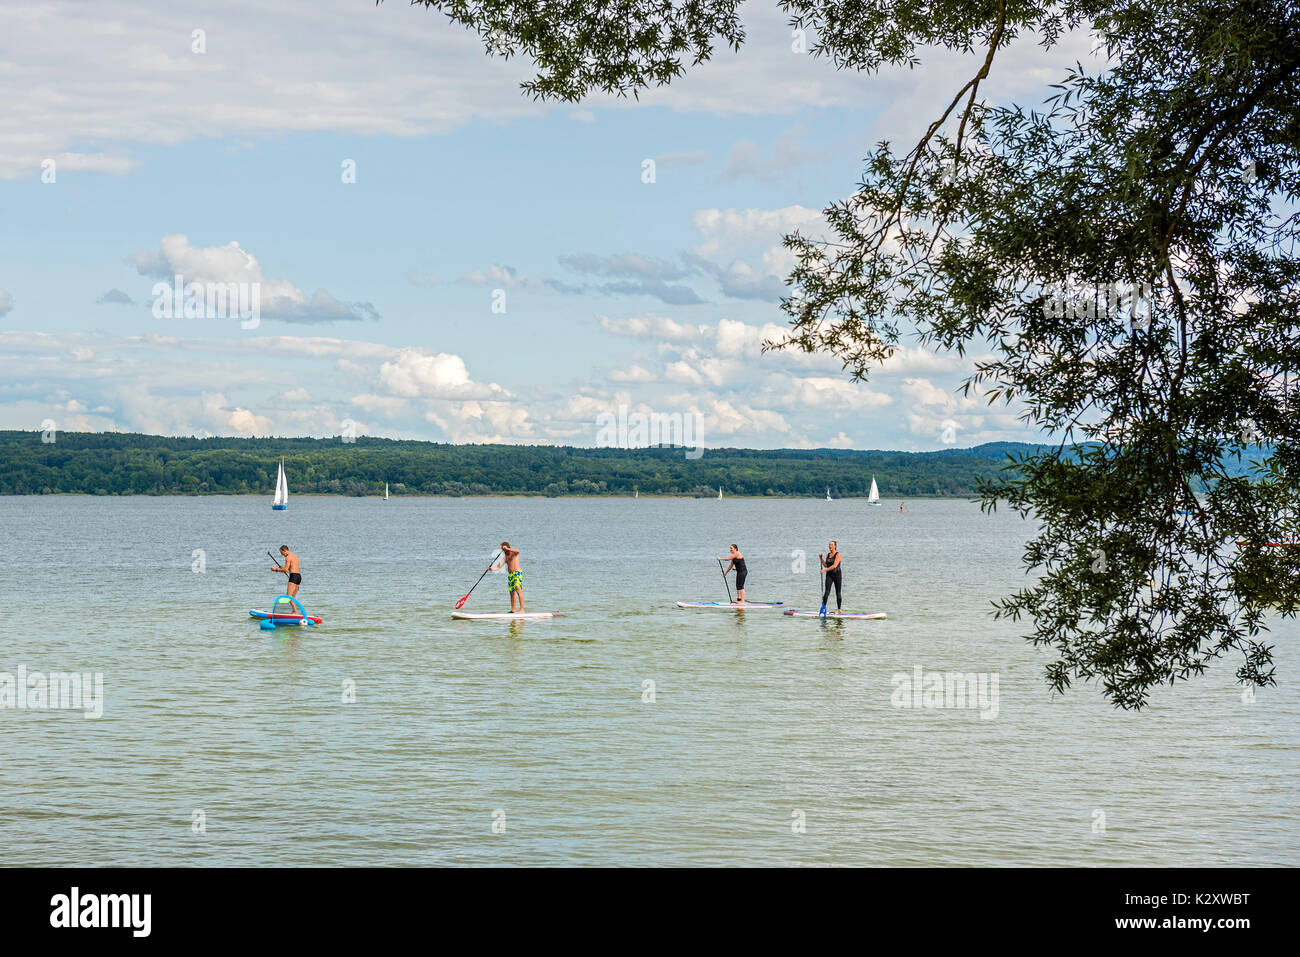 SUP Polo at Utting, Ammersee, Bavaria, Germany - Stock Image